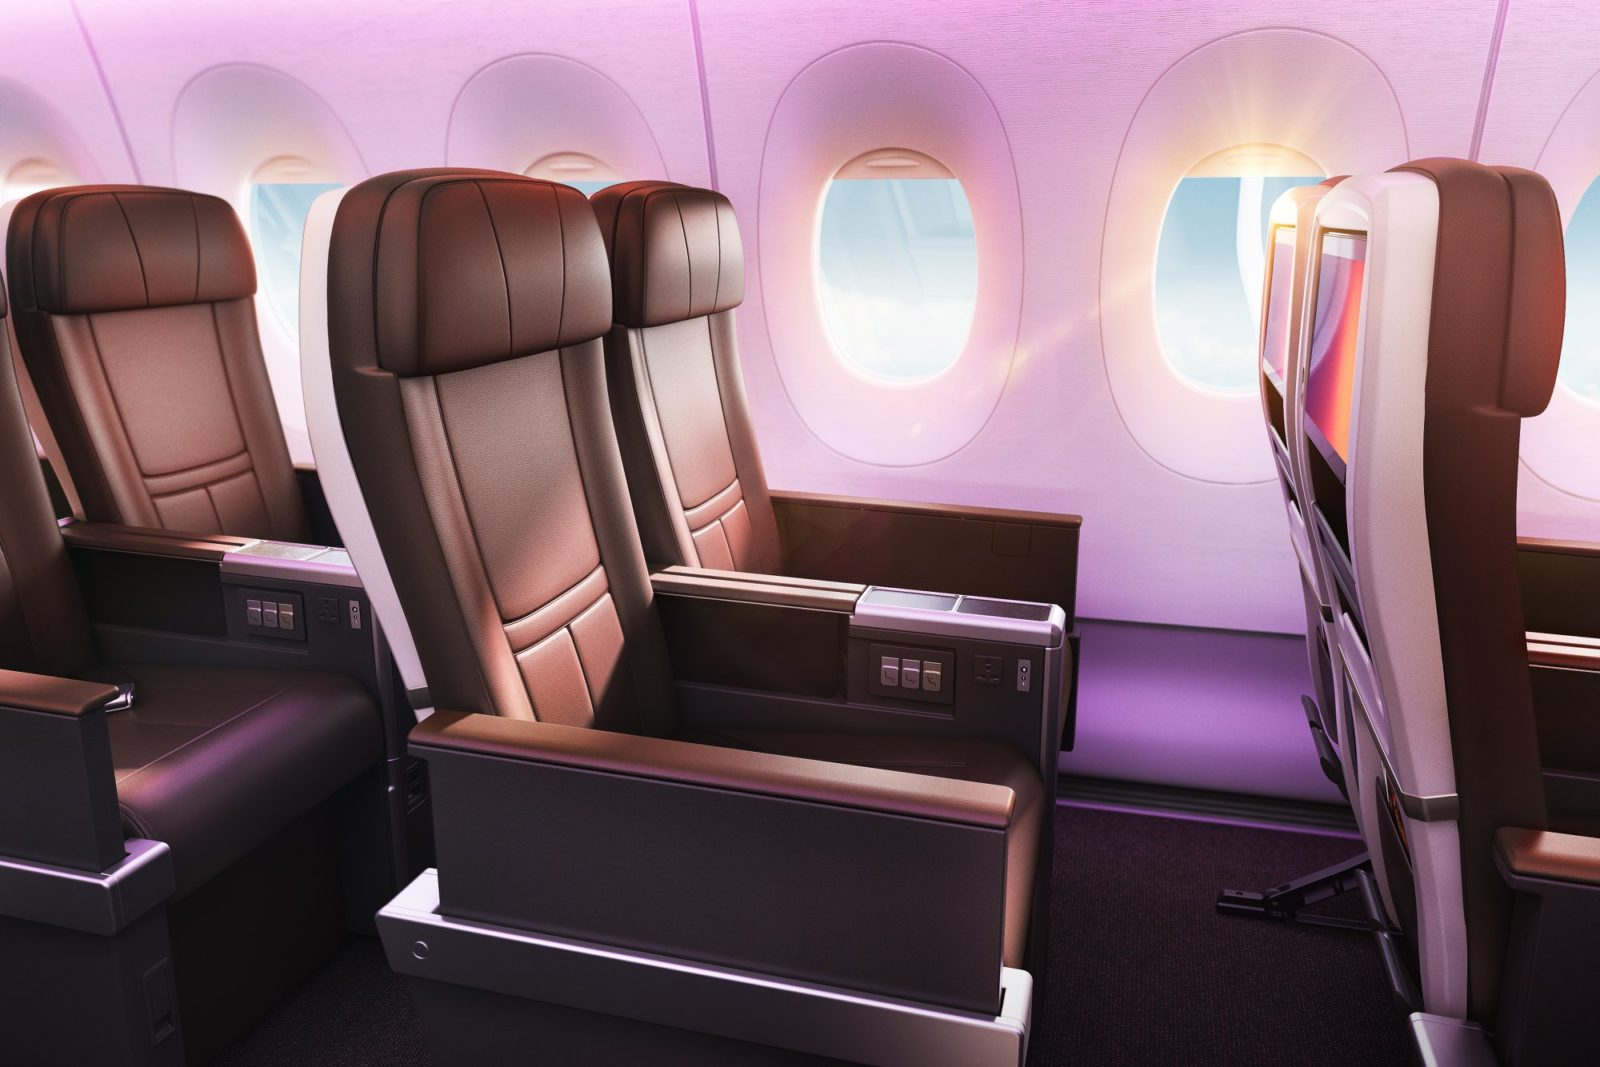 Premium economy seat. Source: Facebook - Virgin Atlantic